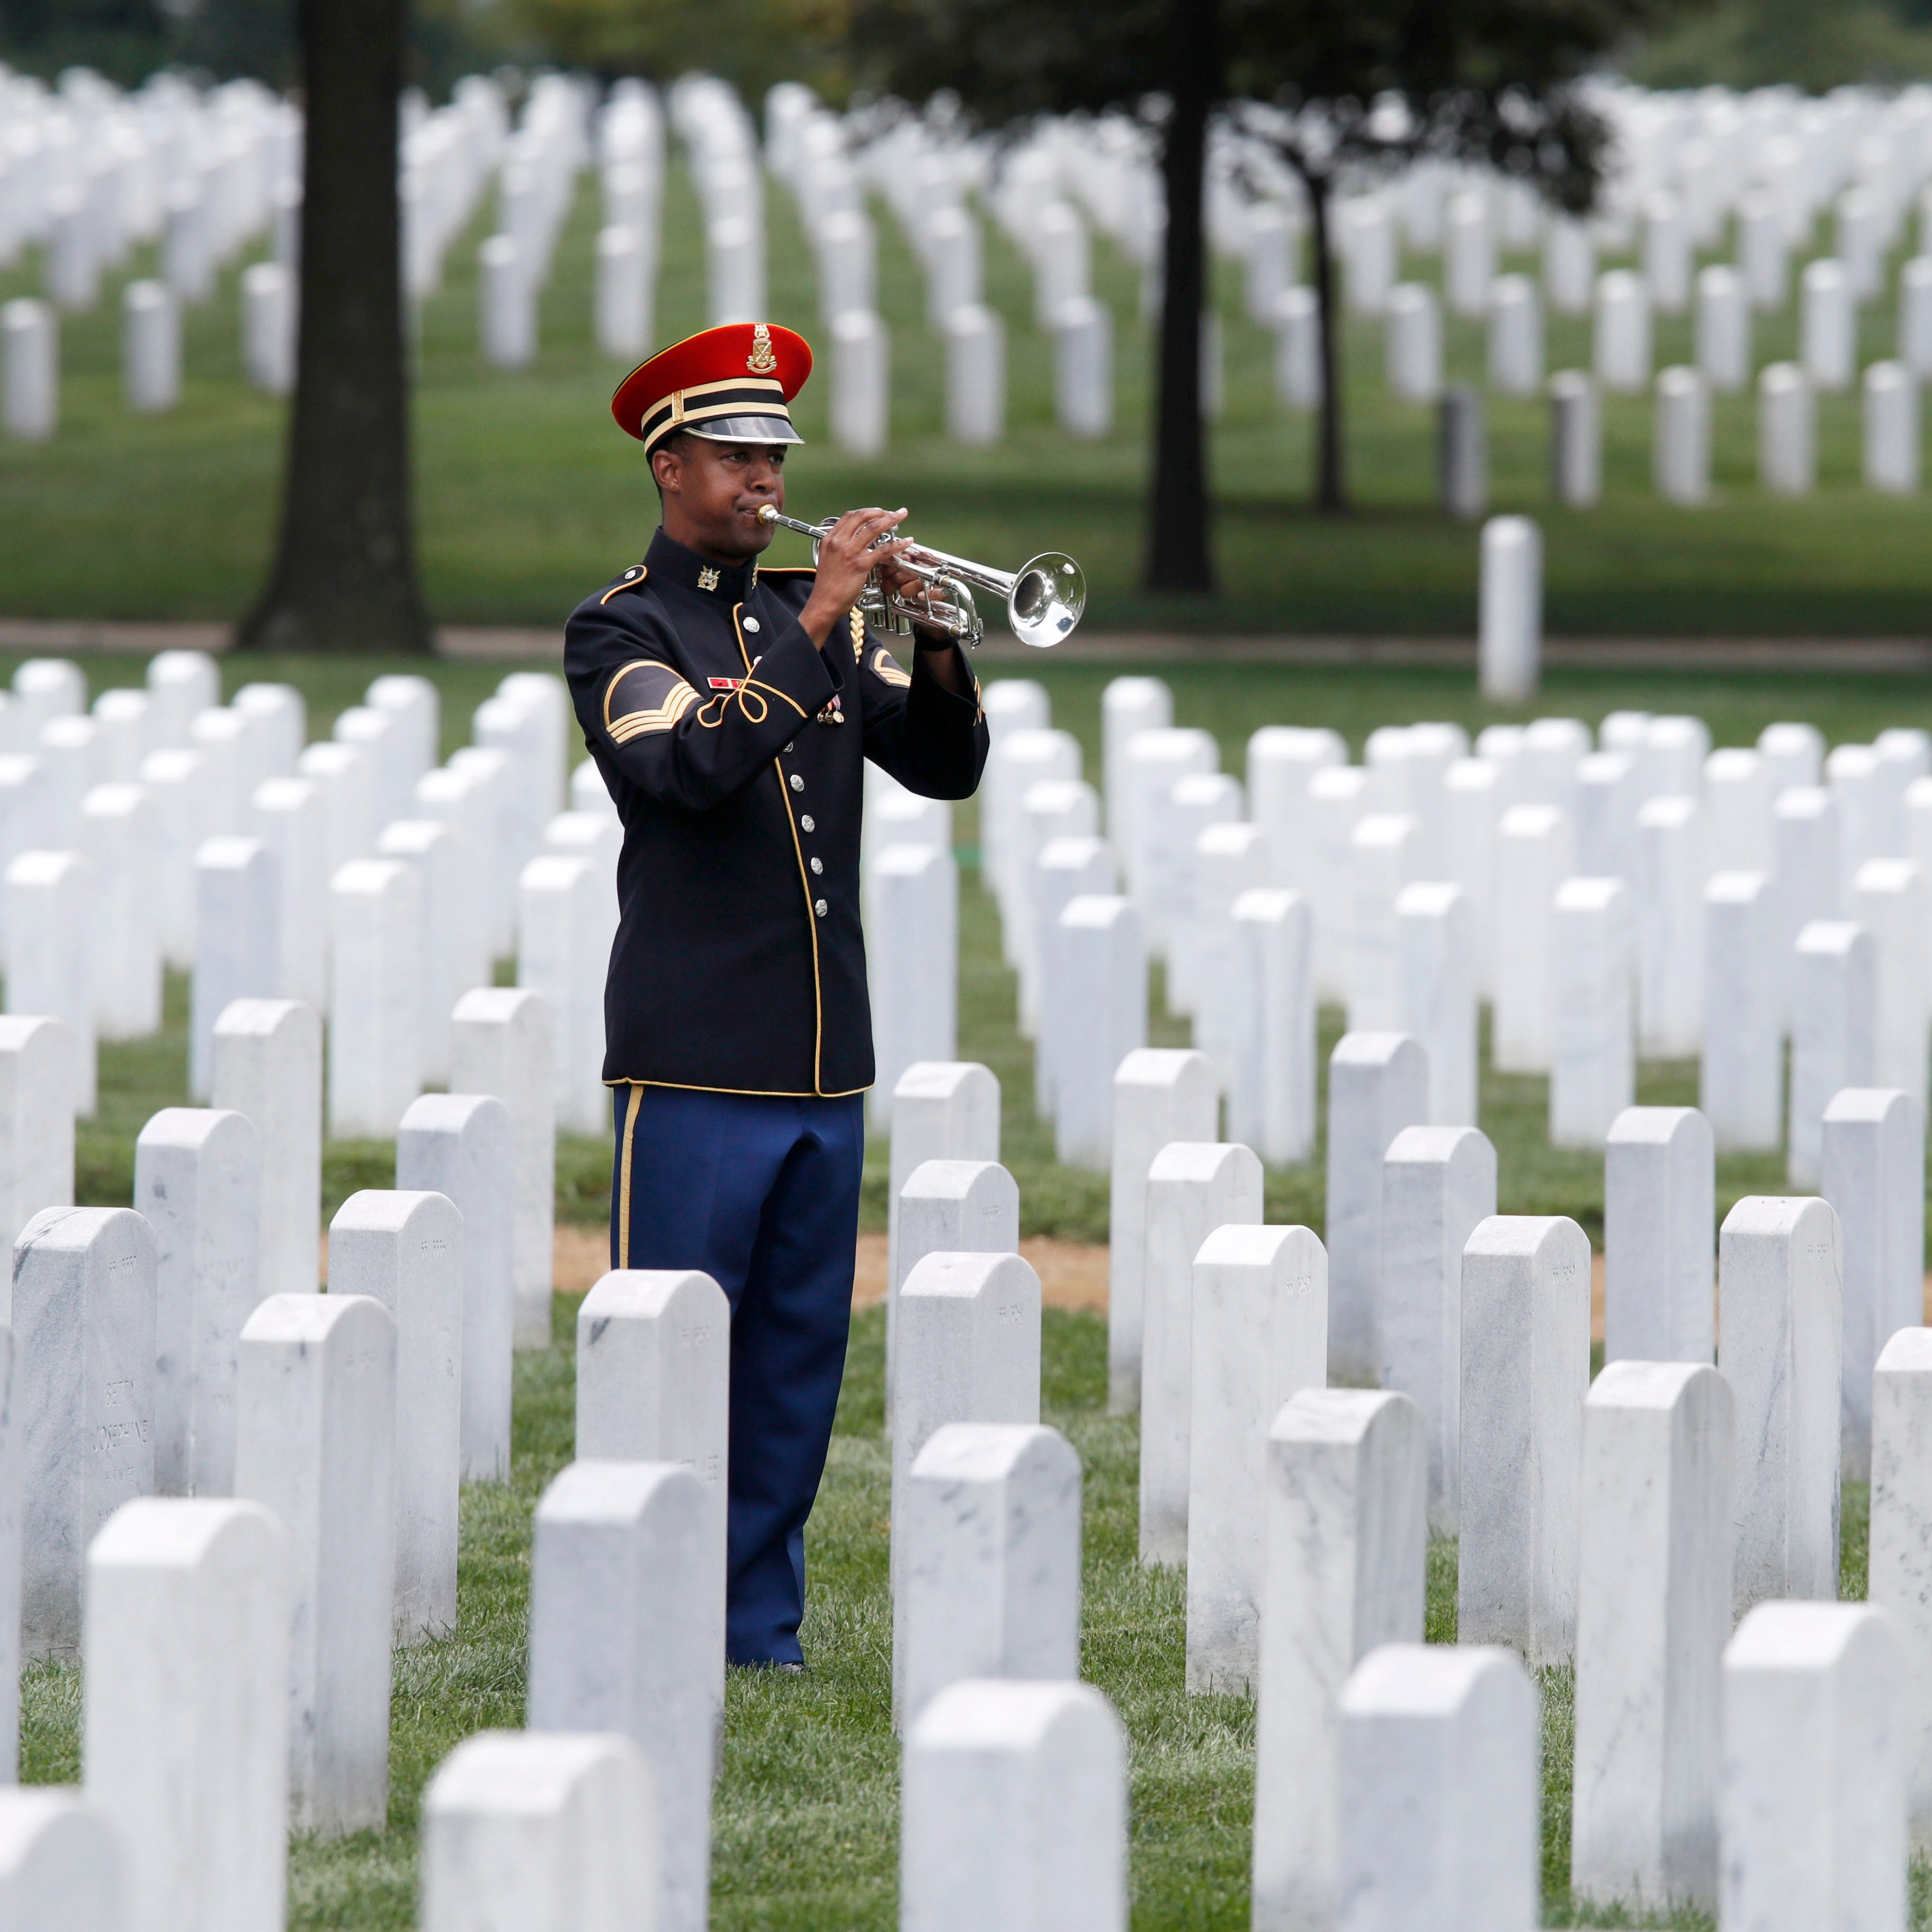 Donald Trump pardoning war criminals on Memorial Day would be desecrating a holiday